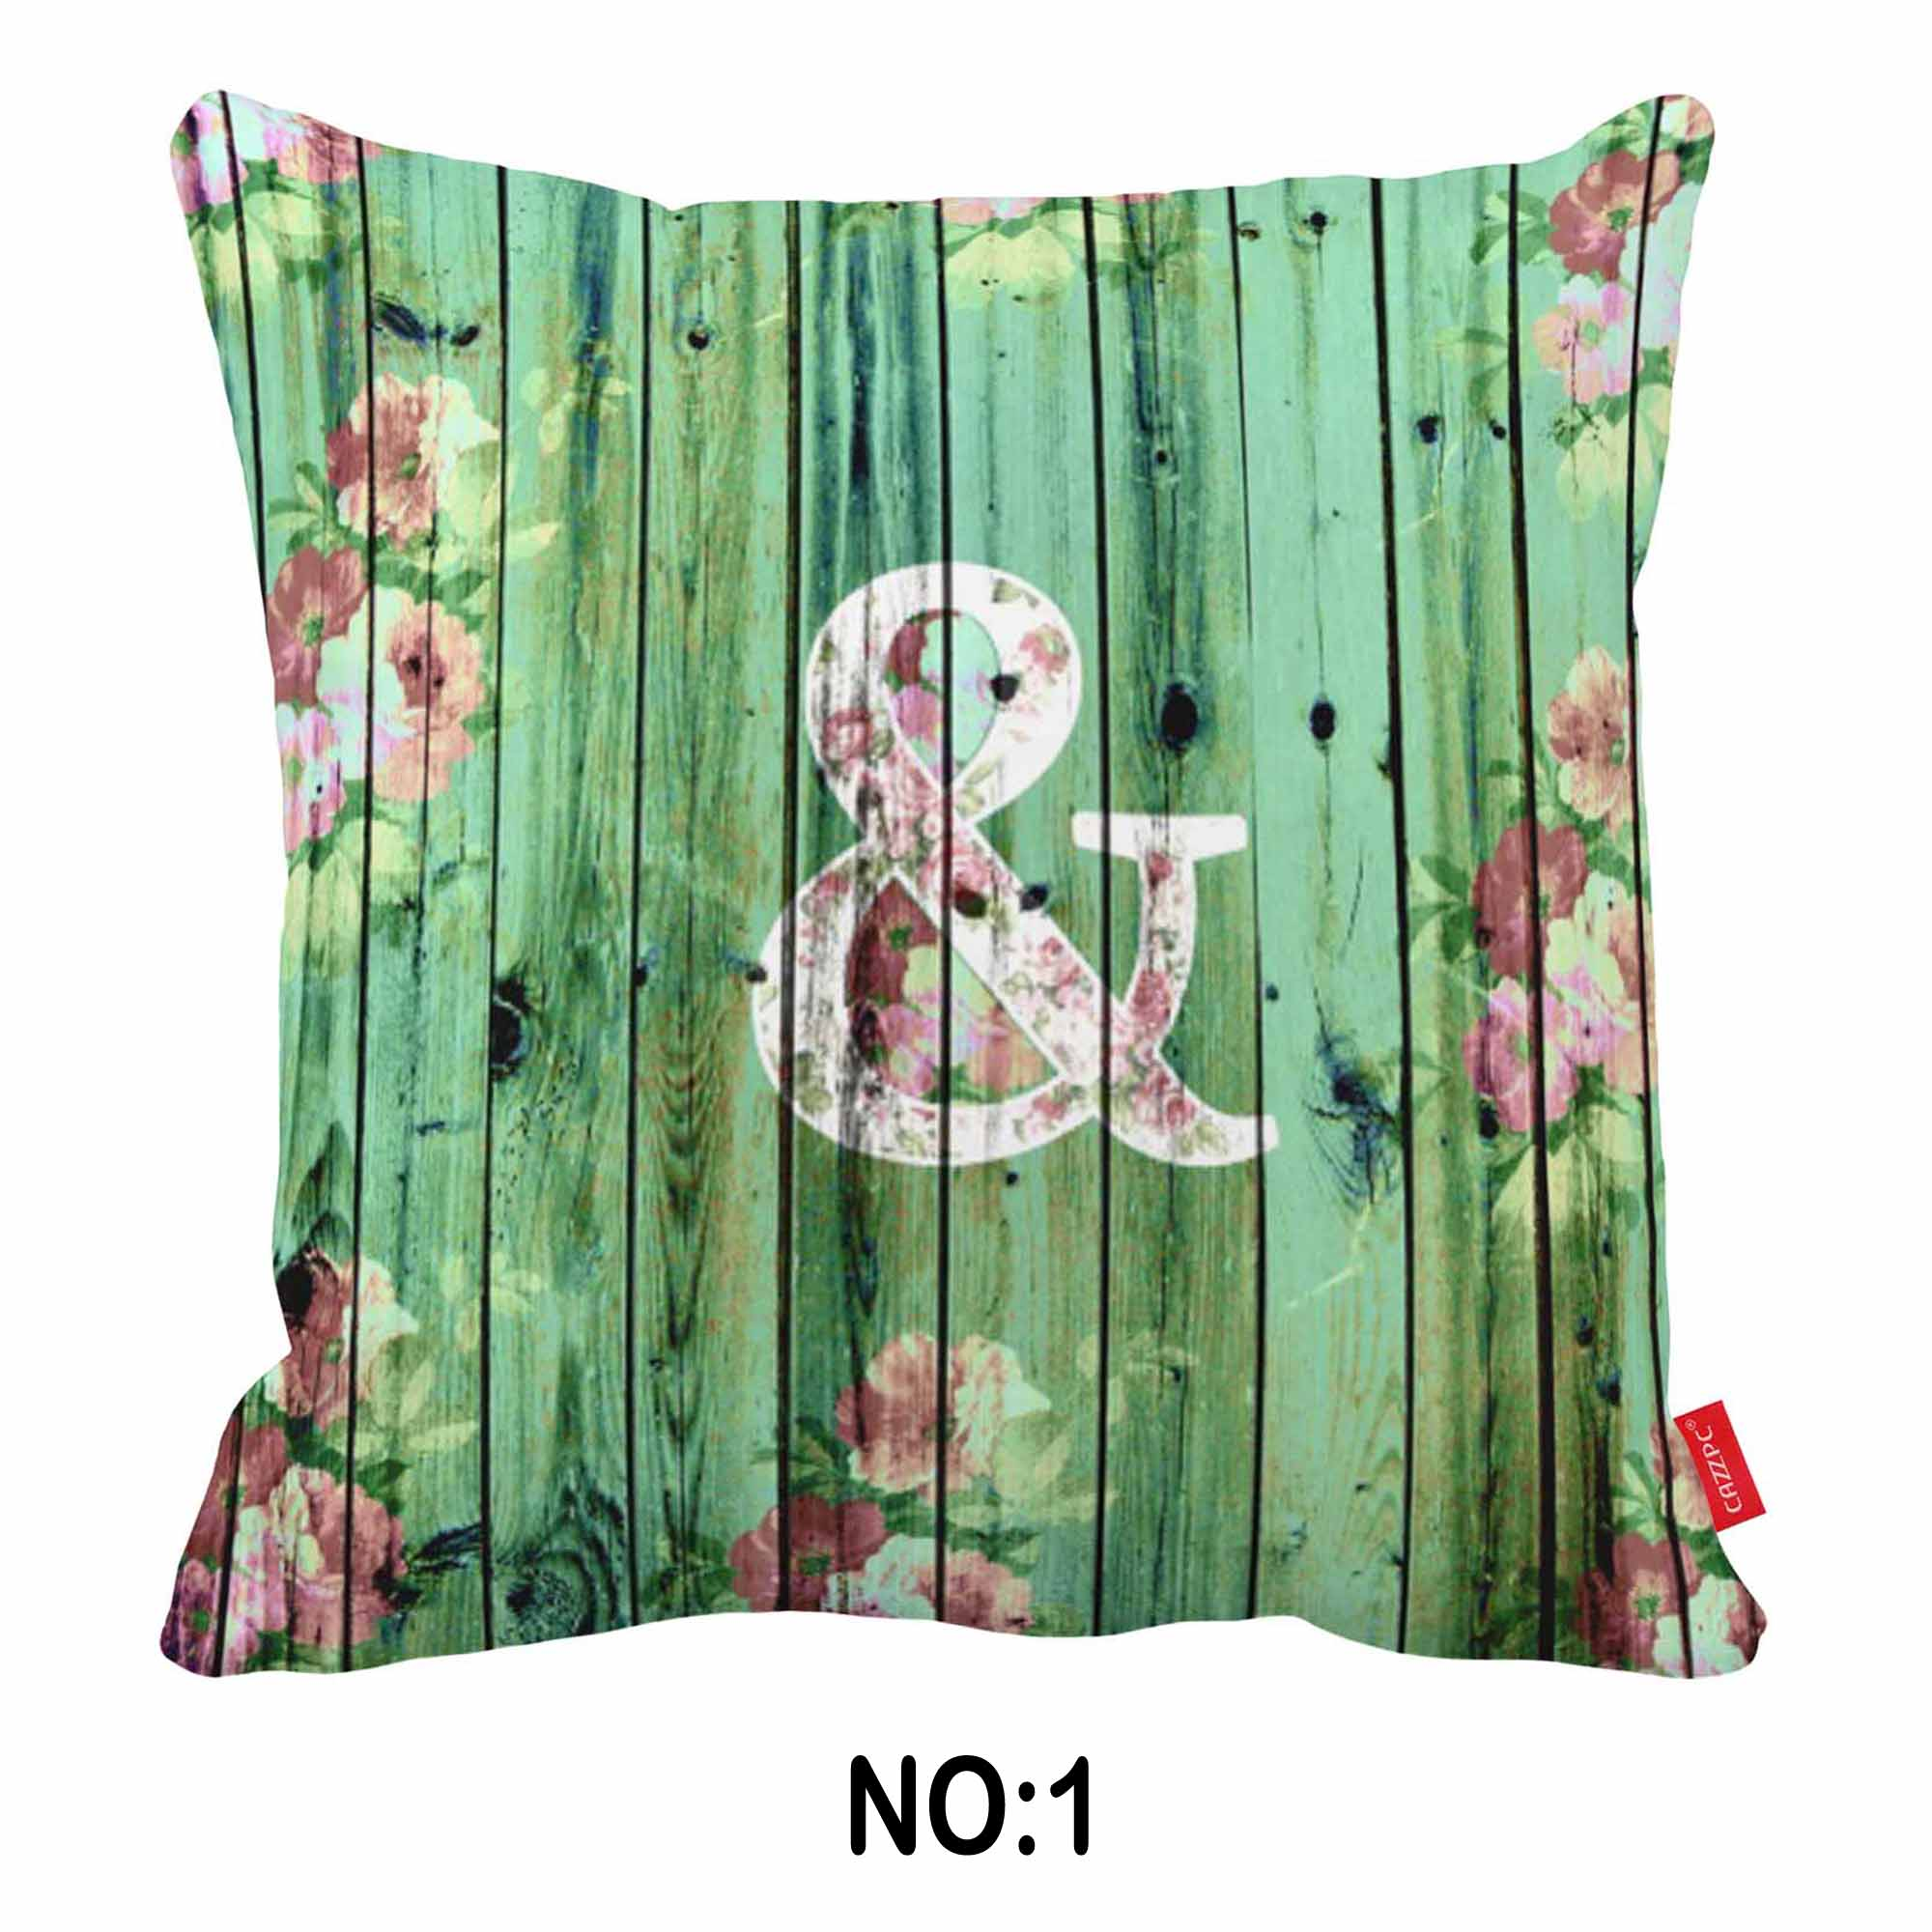 Boho Sofa Promotion Shop for Promotional Boho Sofa on Aliexpress